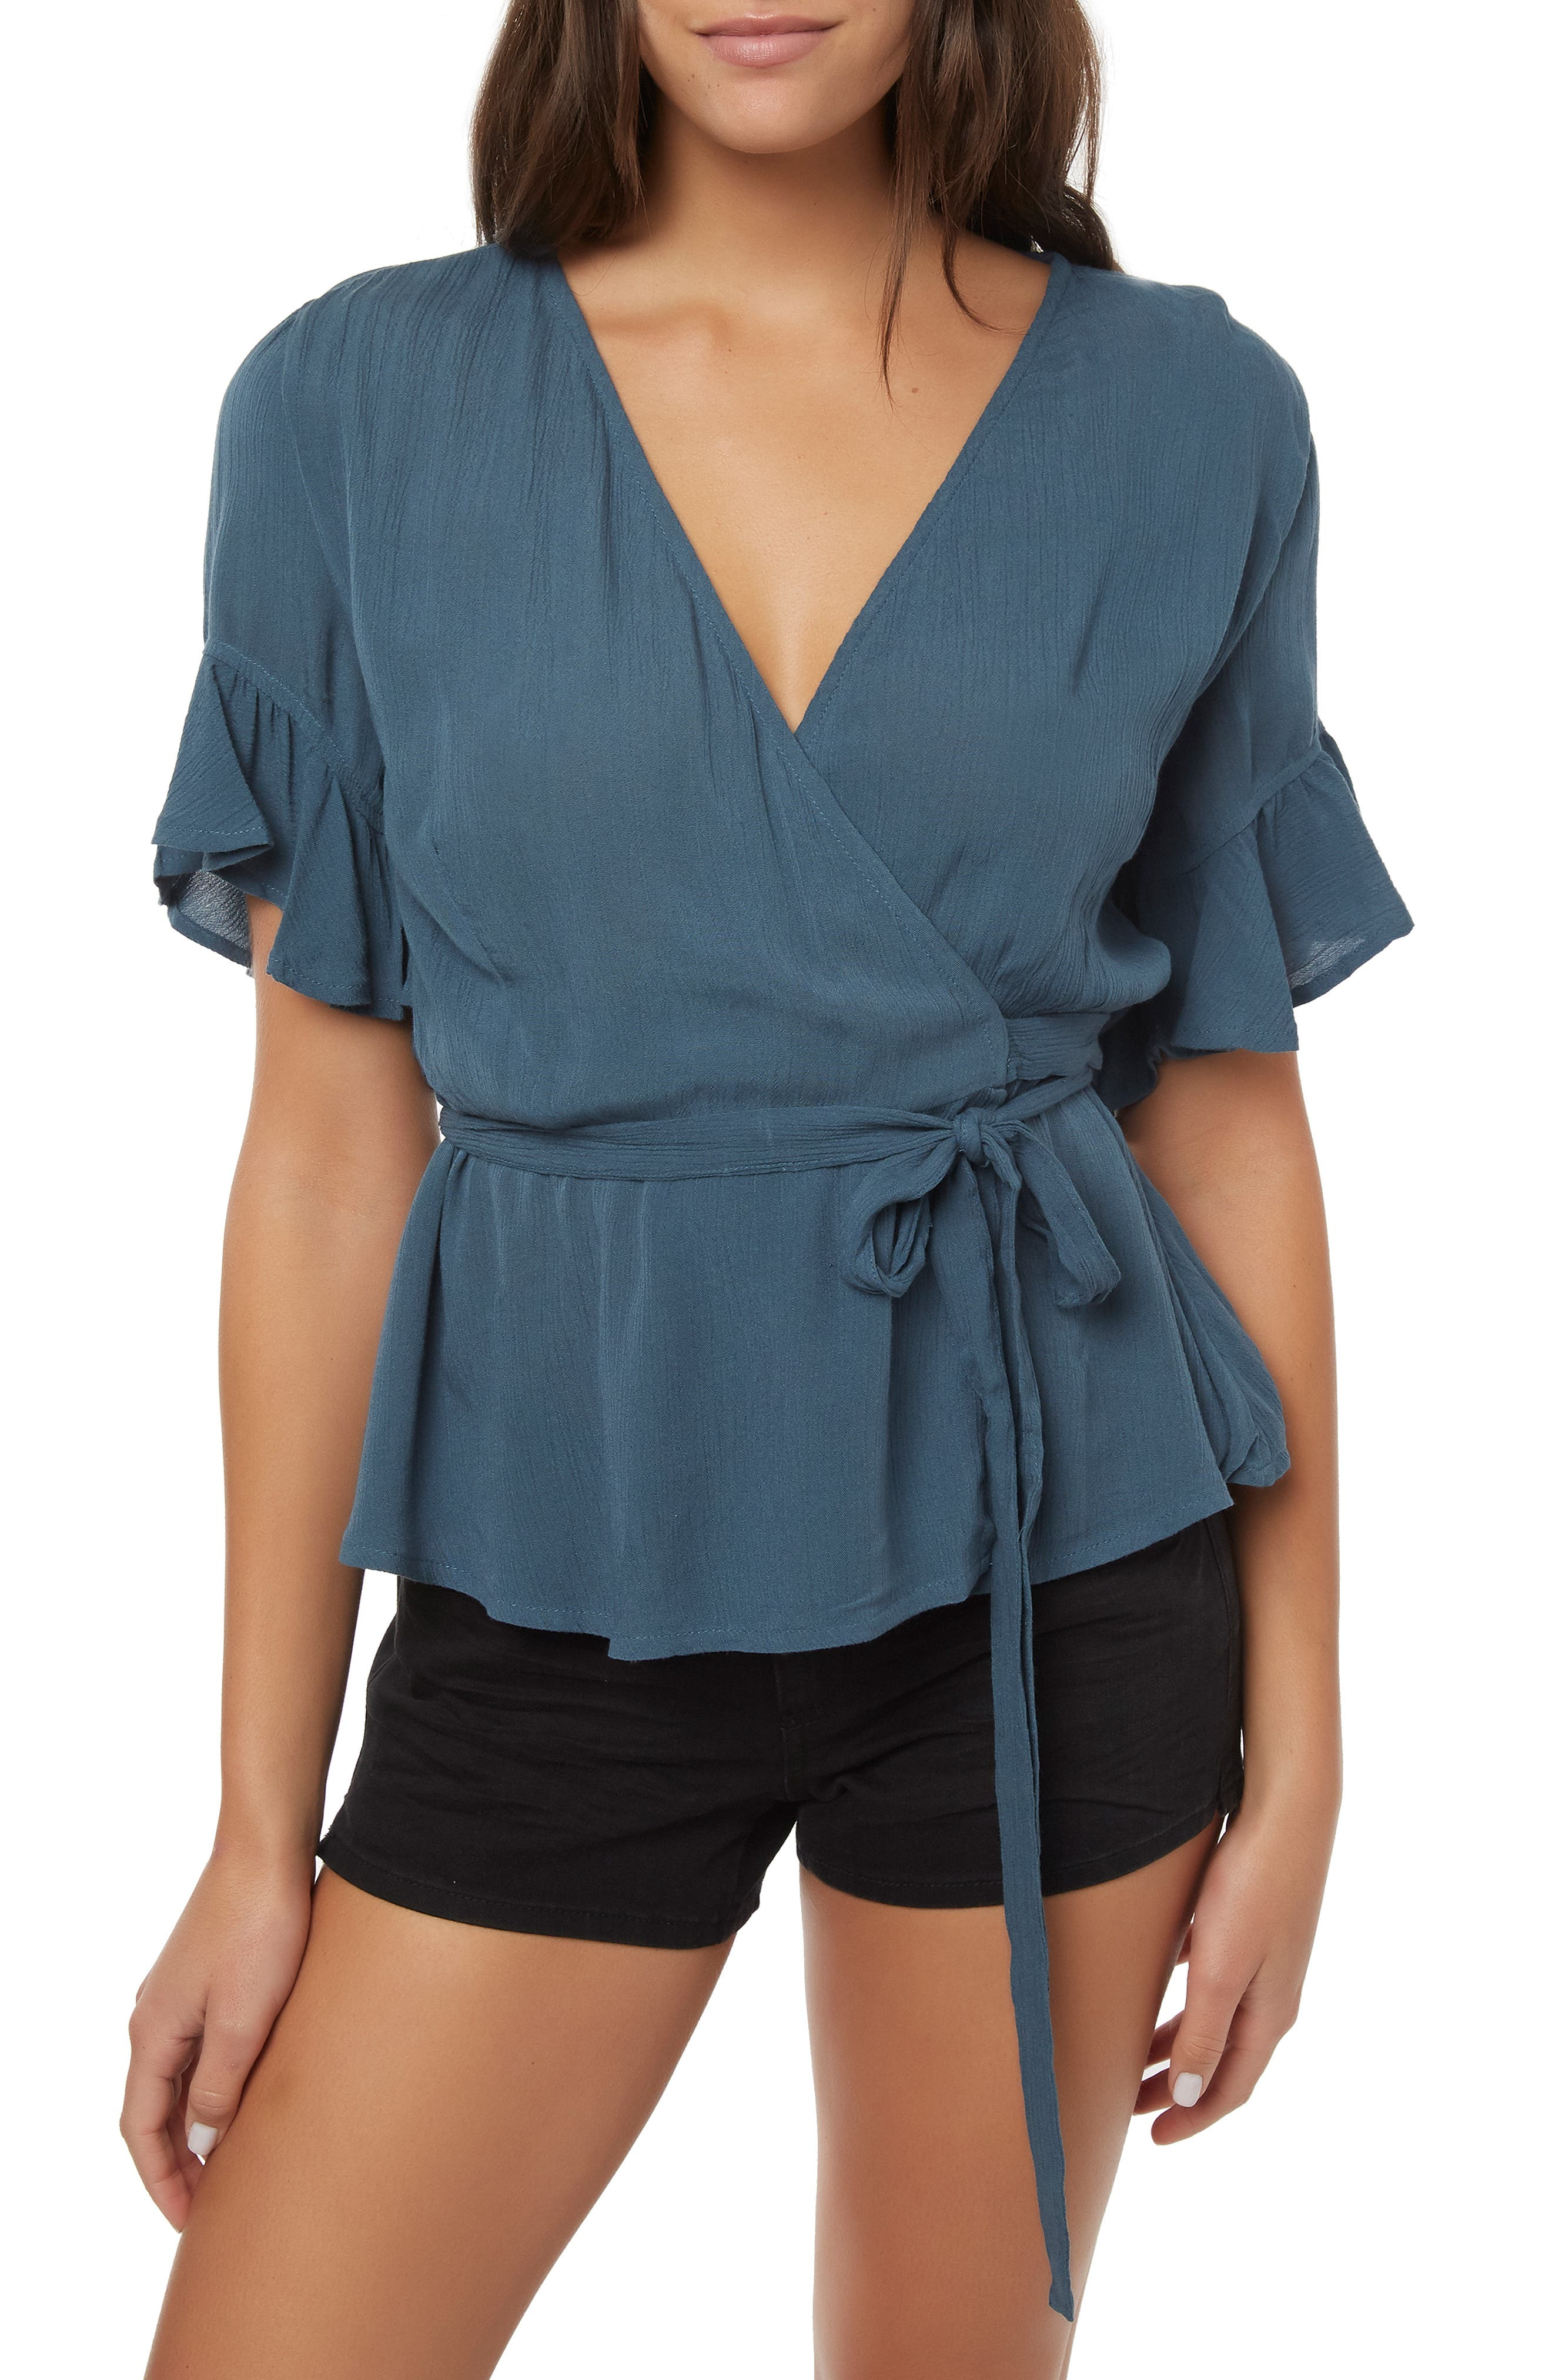 O'NEILL Sarita Wrap Top, Main, color, STARGAZER